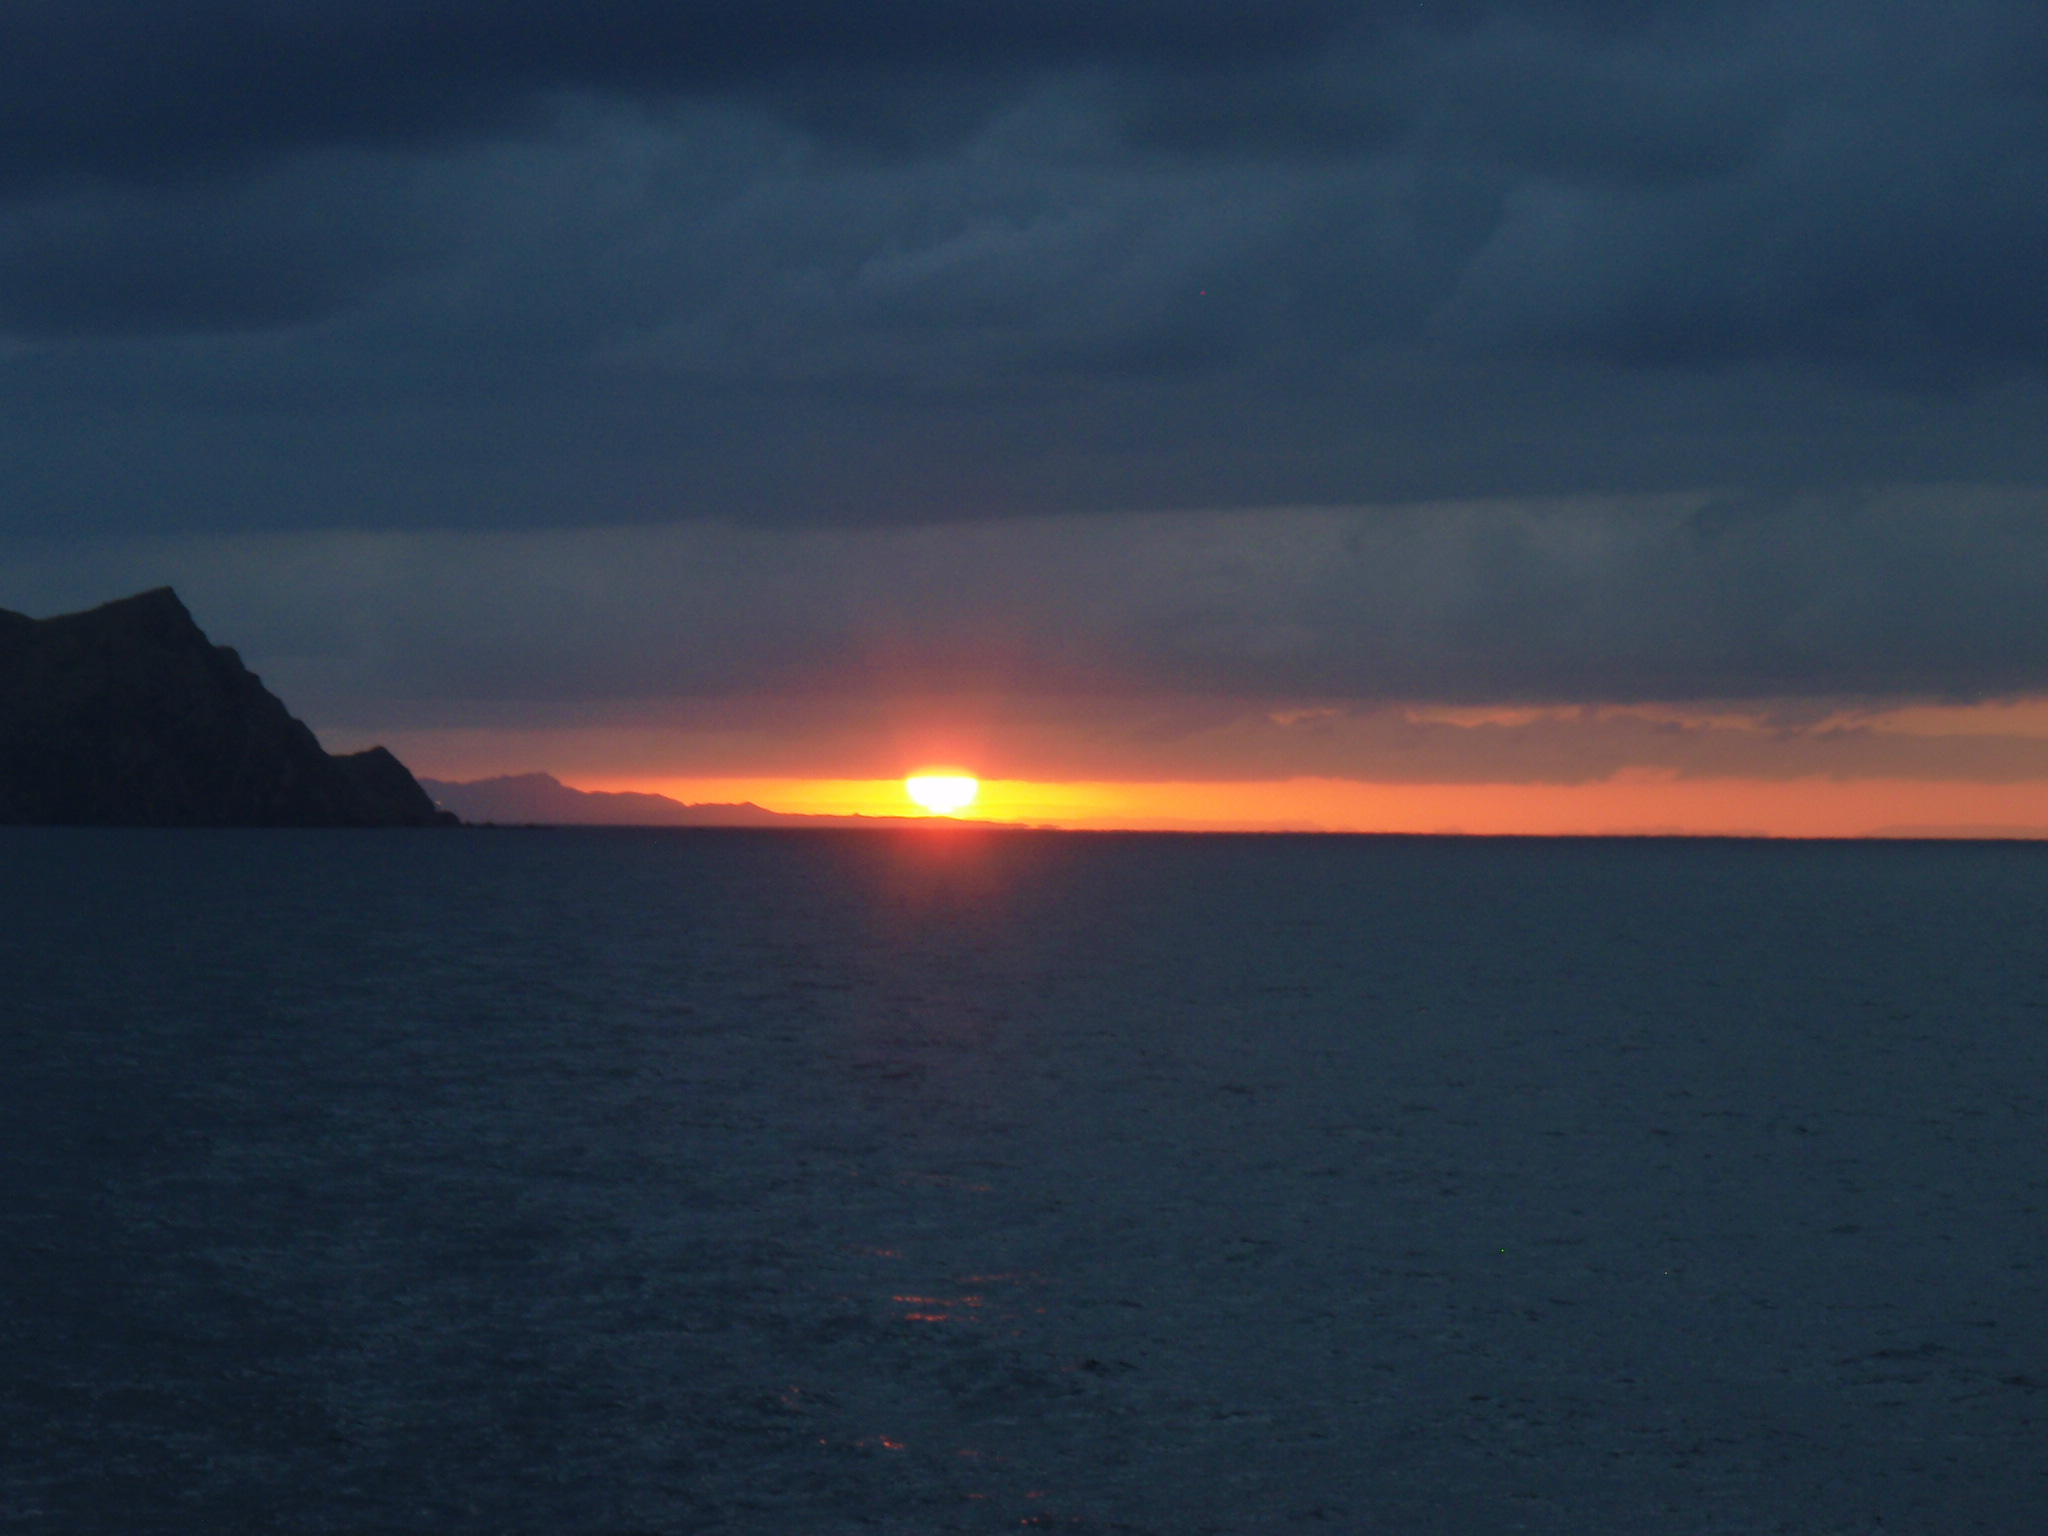 Sunset over the Baja from the ferry leaving La Paz and heading for Mazatlan